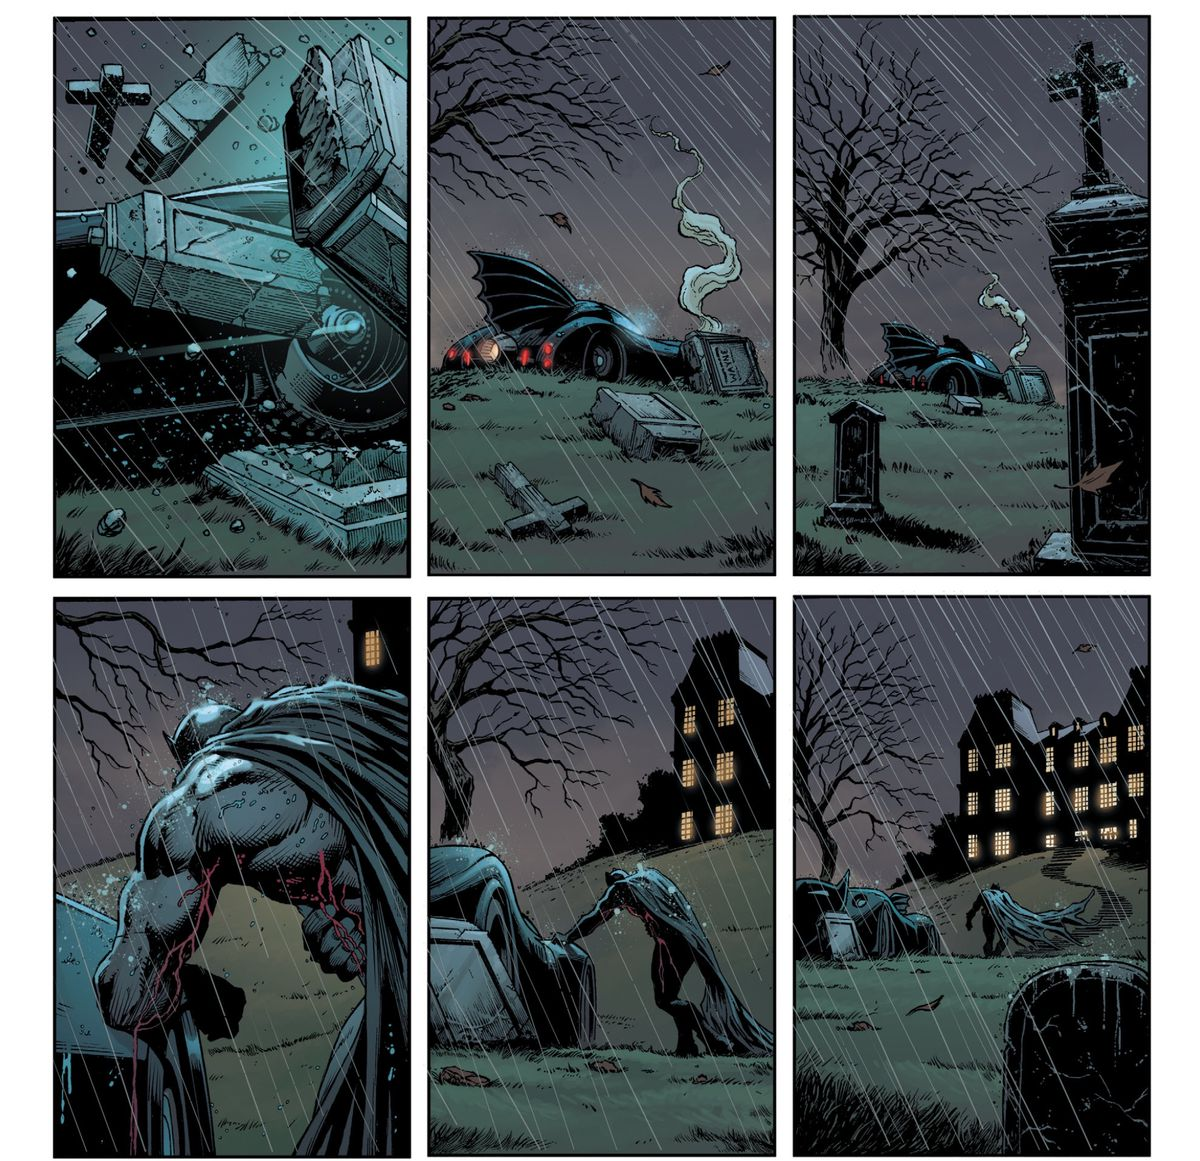 On a rainy night, the Batmobile plows over a gravestone. Batman staggers out of the car and up to Wayne Manor, the lights of its windows glowing in the dark, in Three Jokers #1, DC Comics (2020).